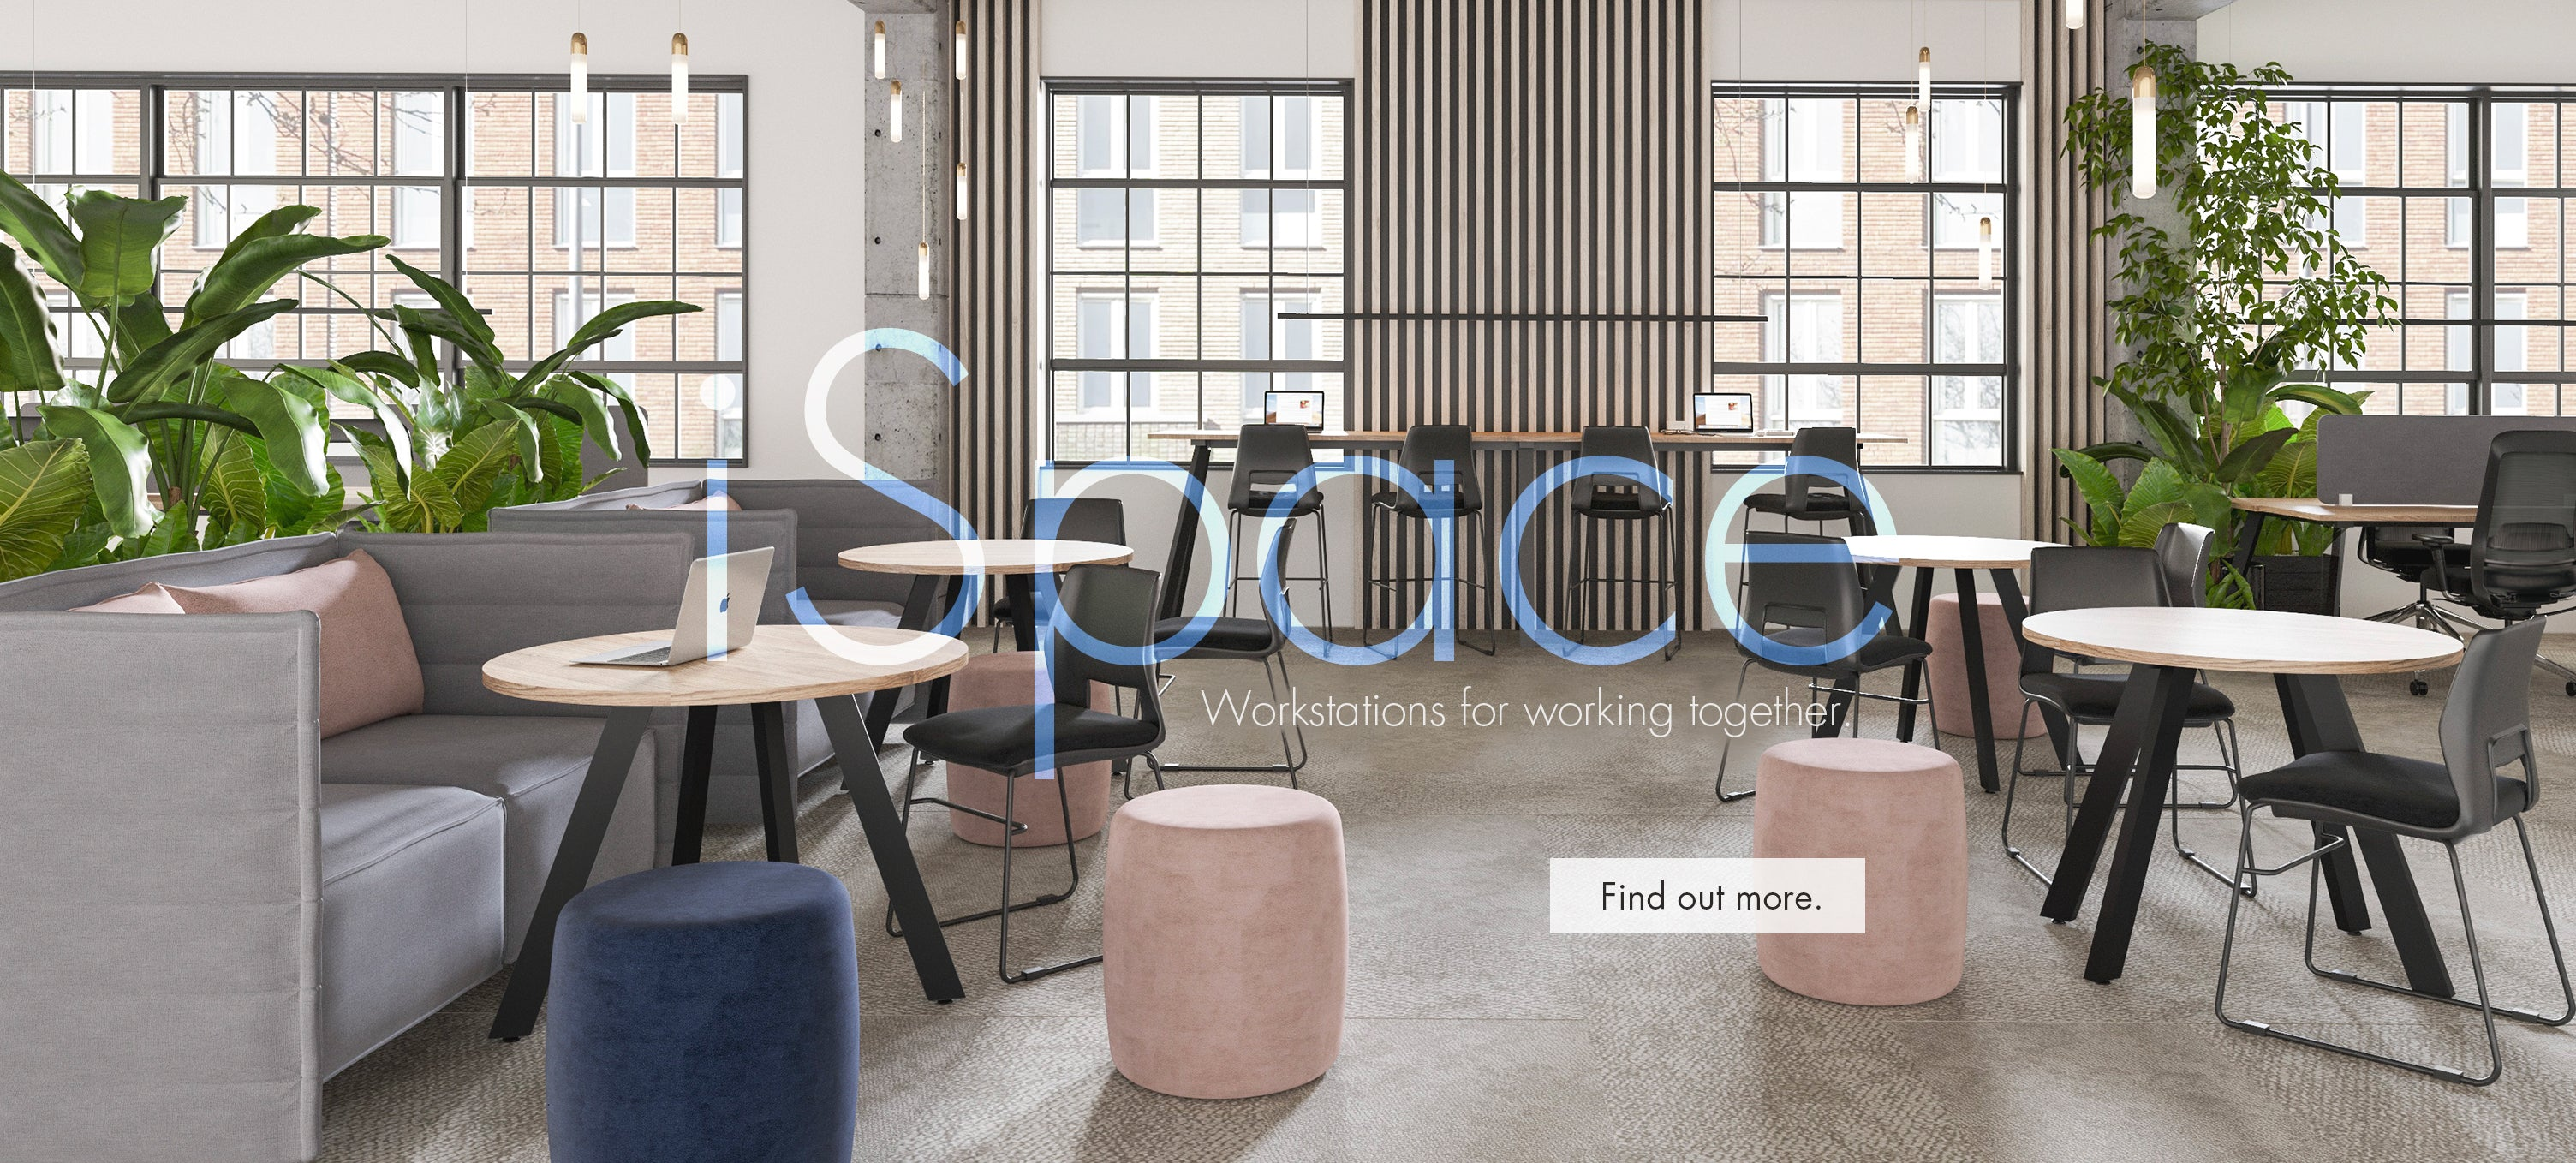 iSpace workstations and tables coworking space furniture